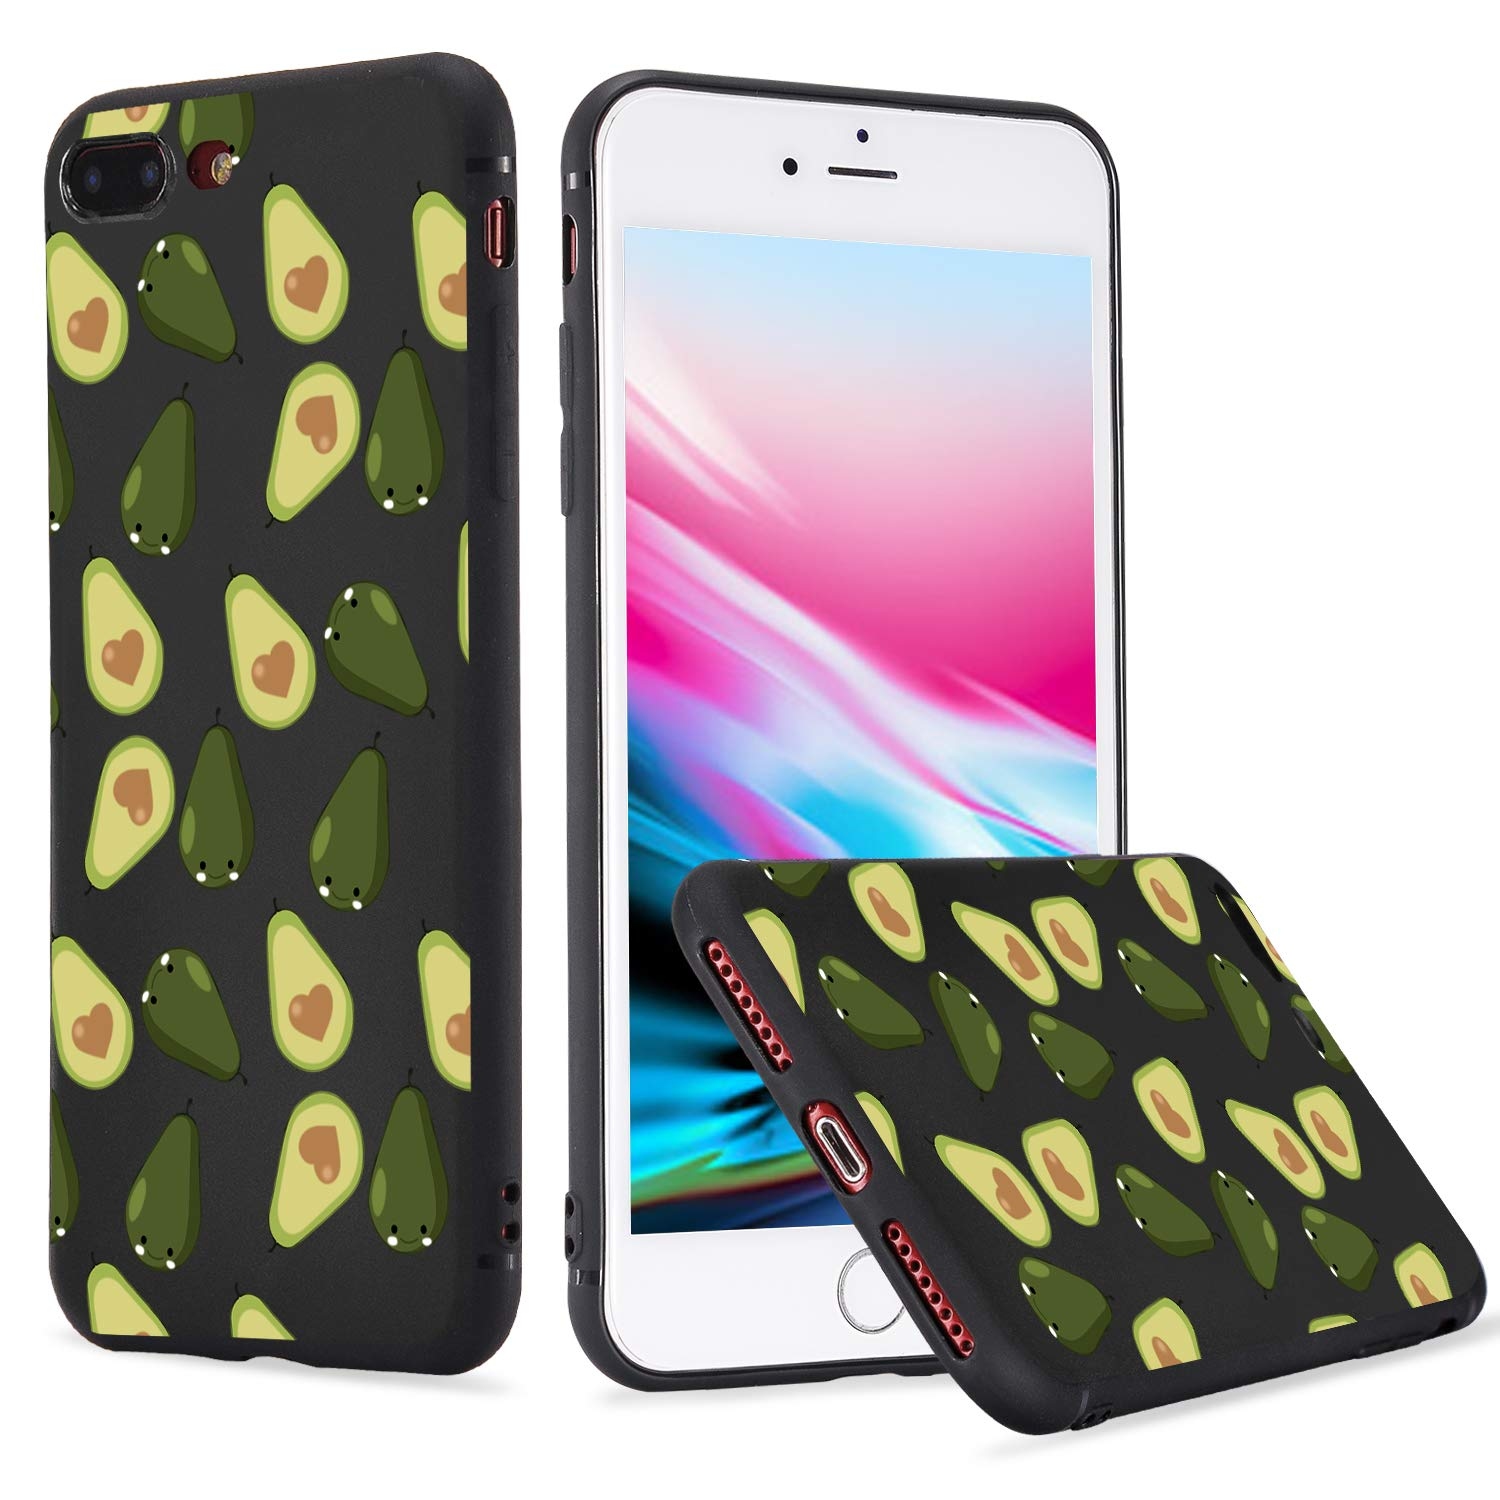 LuGeKe Fruit Avocado Print Phone Case for iPhone XR Quality Flexible Pear Pattern Black Cover Case Durable and Comfortable by LuGeKe